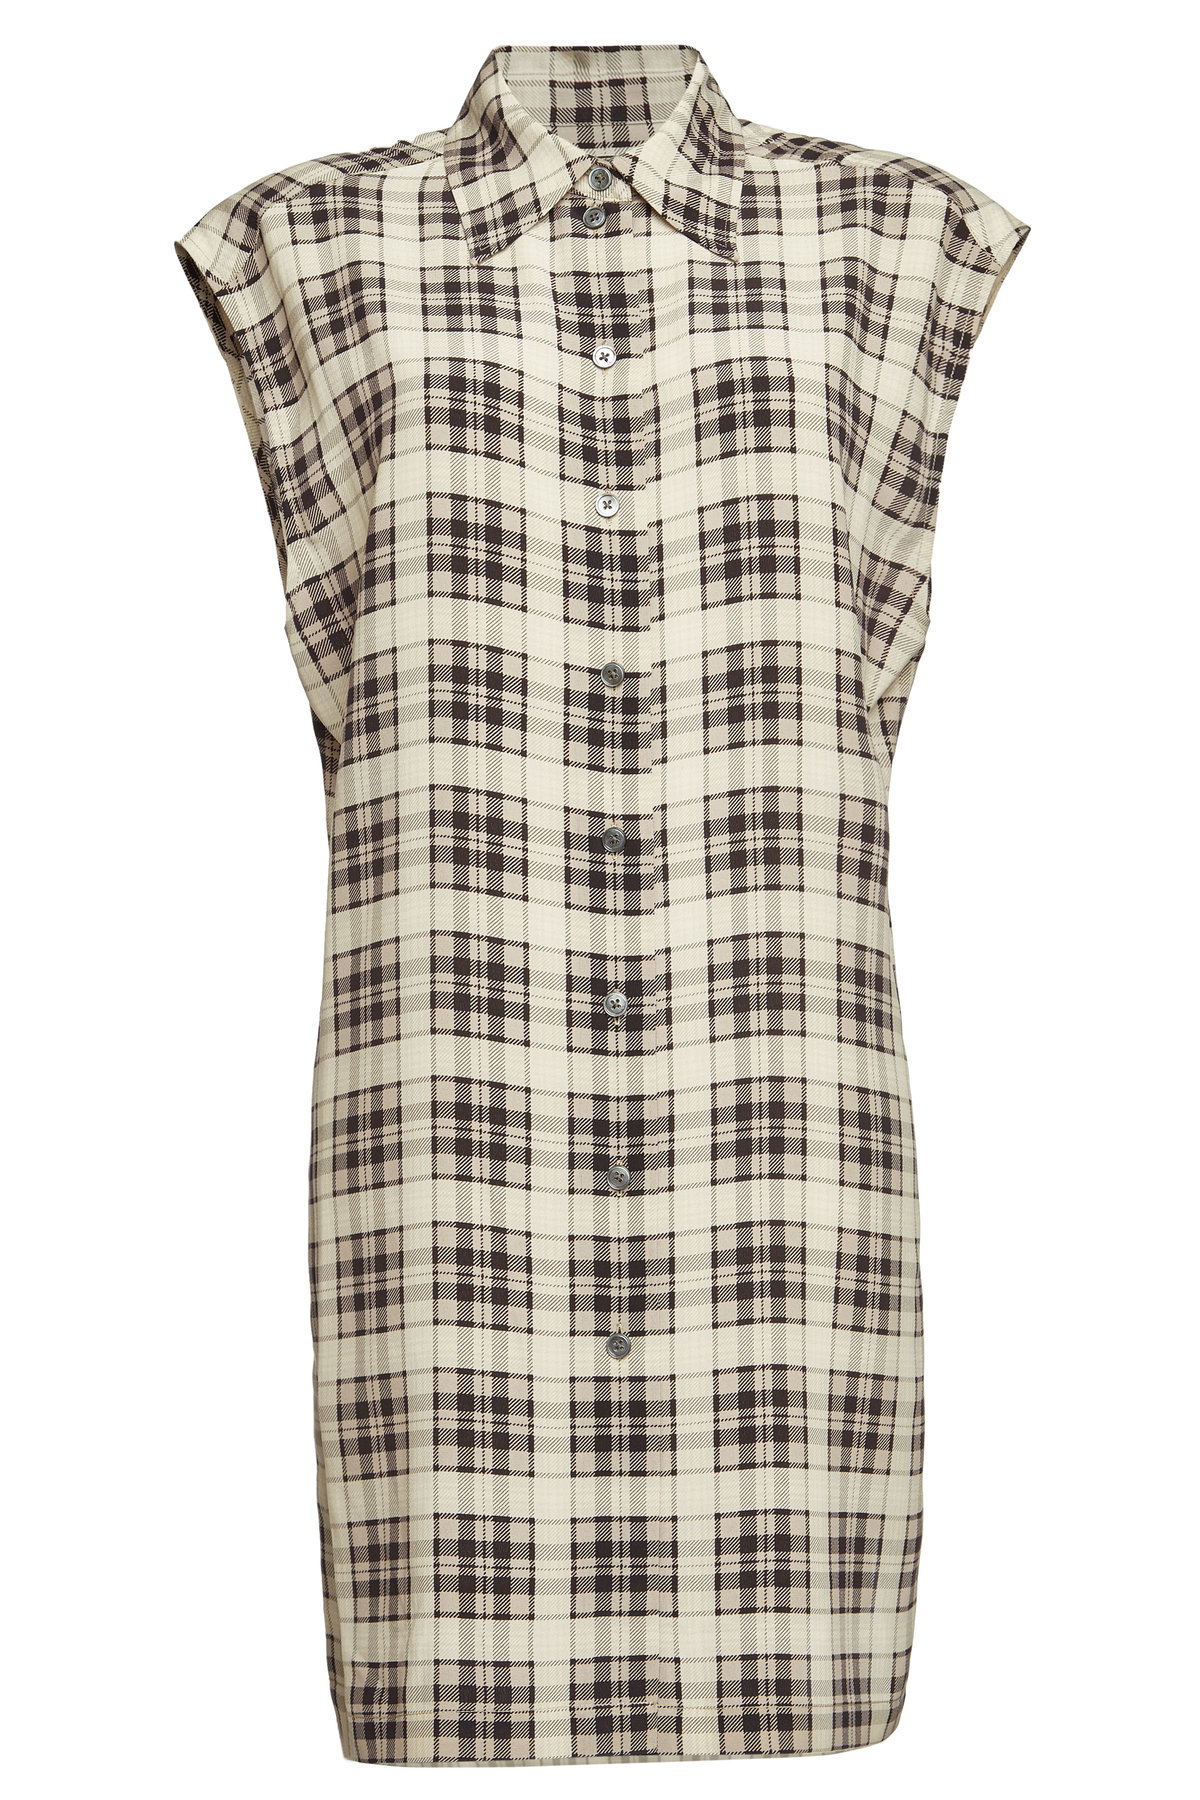 Marc Jacobs Checked Silk Top In Multicolored